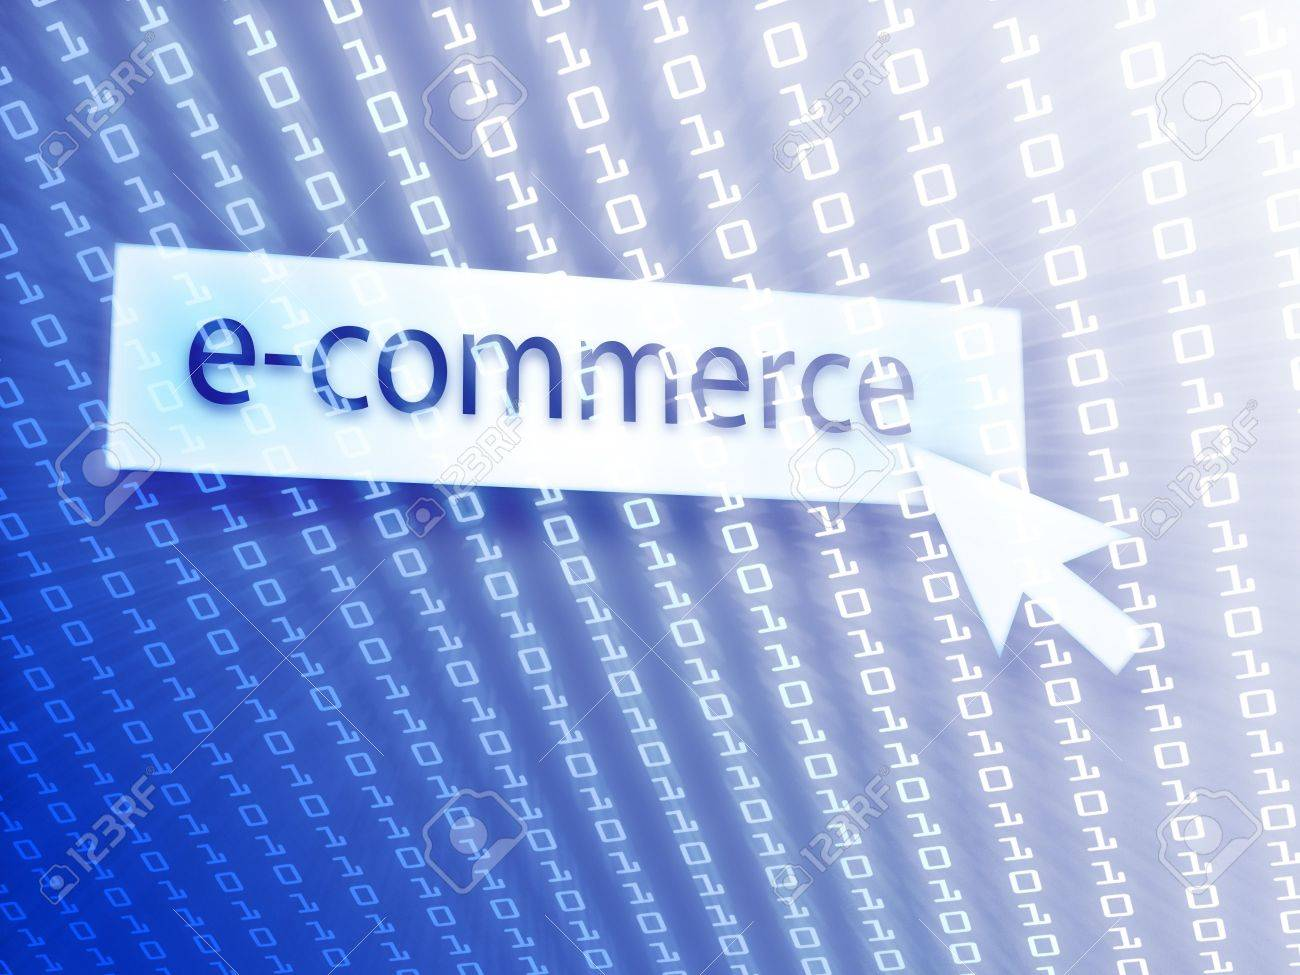 E commerce background images - E Commerce Button With Clicking Mouse Icon Digital Background Stock Photo 5604439